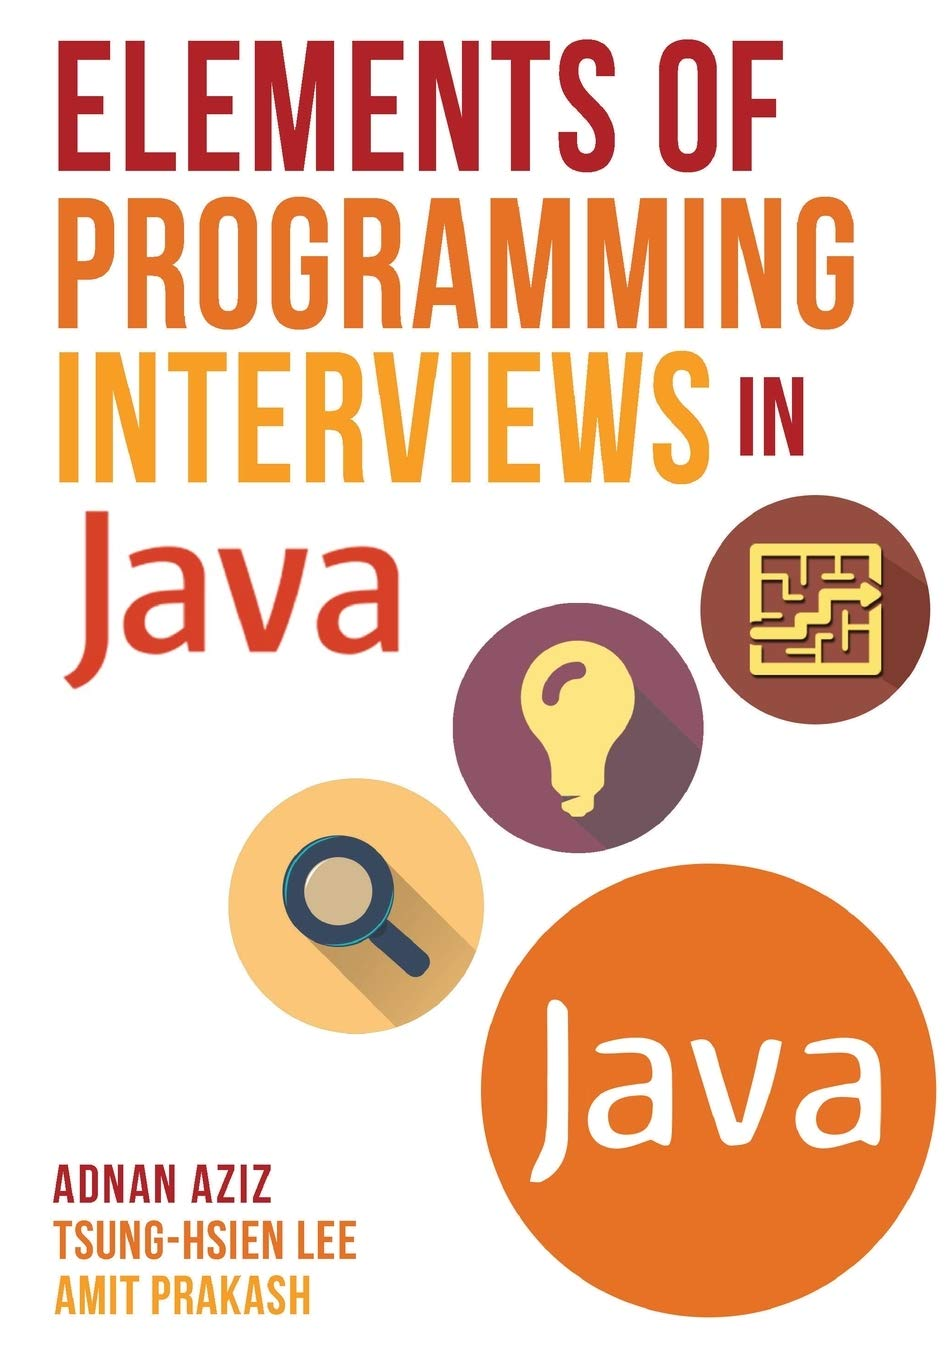 Elements of Programming Interviews in Java: The Insiders' Guide by CreateSpace Independent Publishing Platform